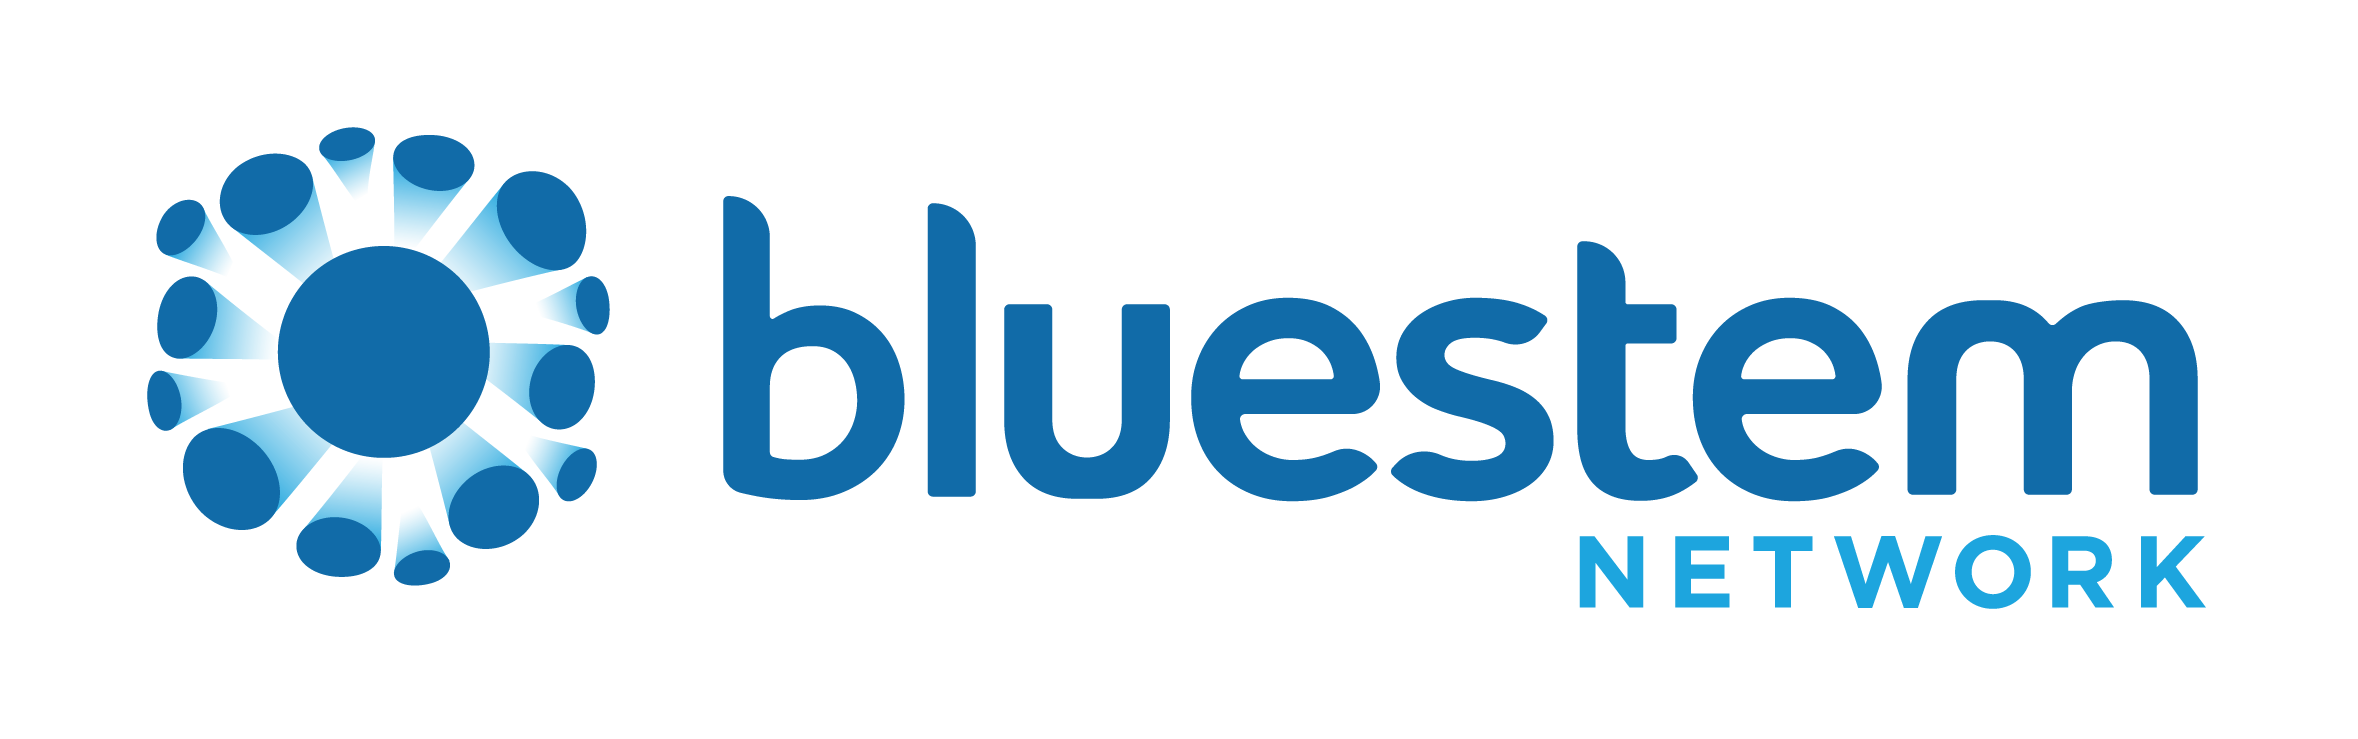 Bluestem-Logo-Builf-lrg_Bluestem-Logo-RGB (1).png